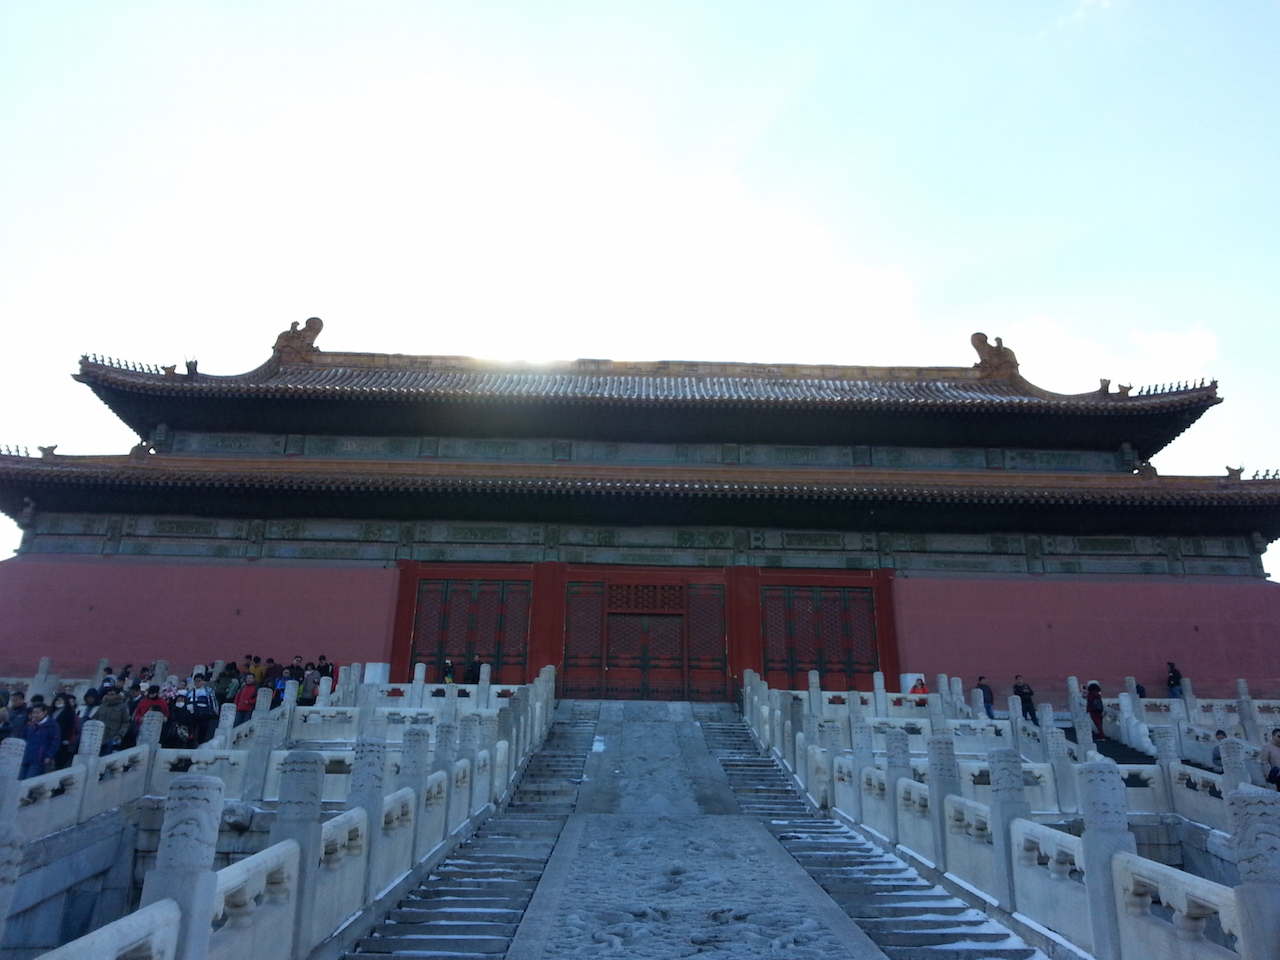 The north end of a Forbidden City Palace